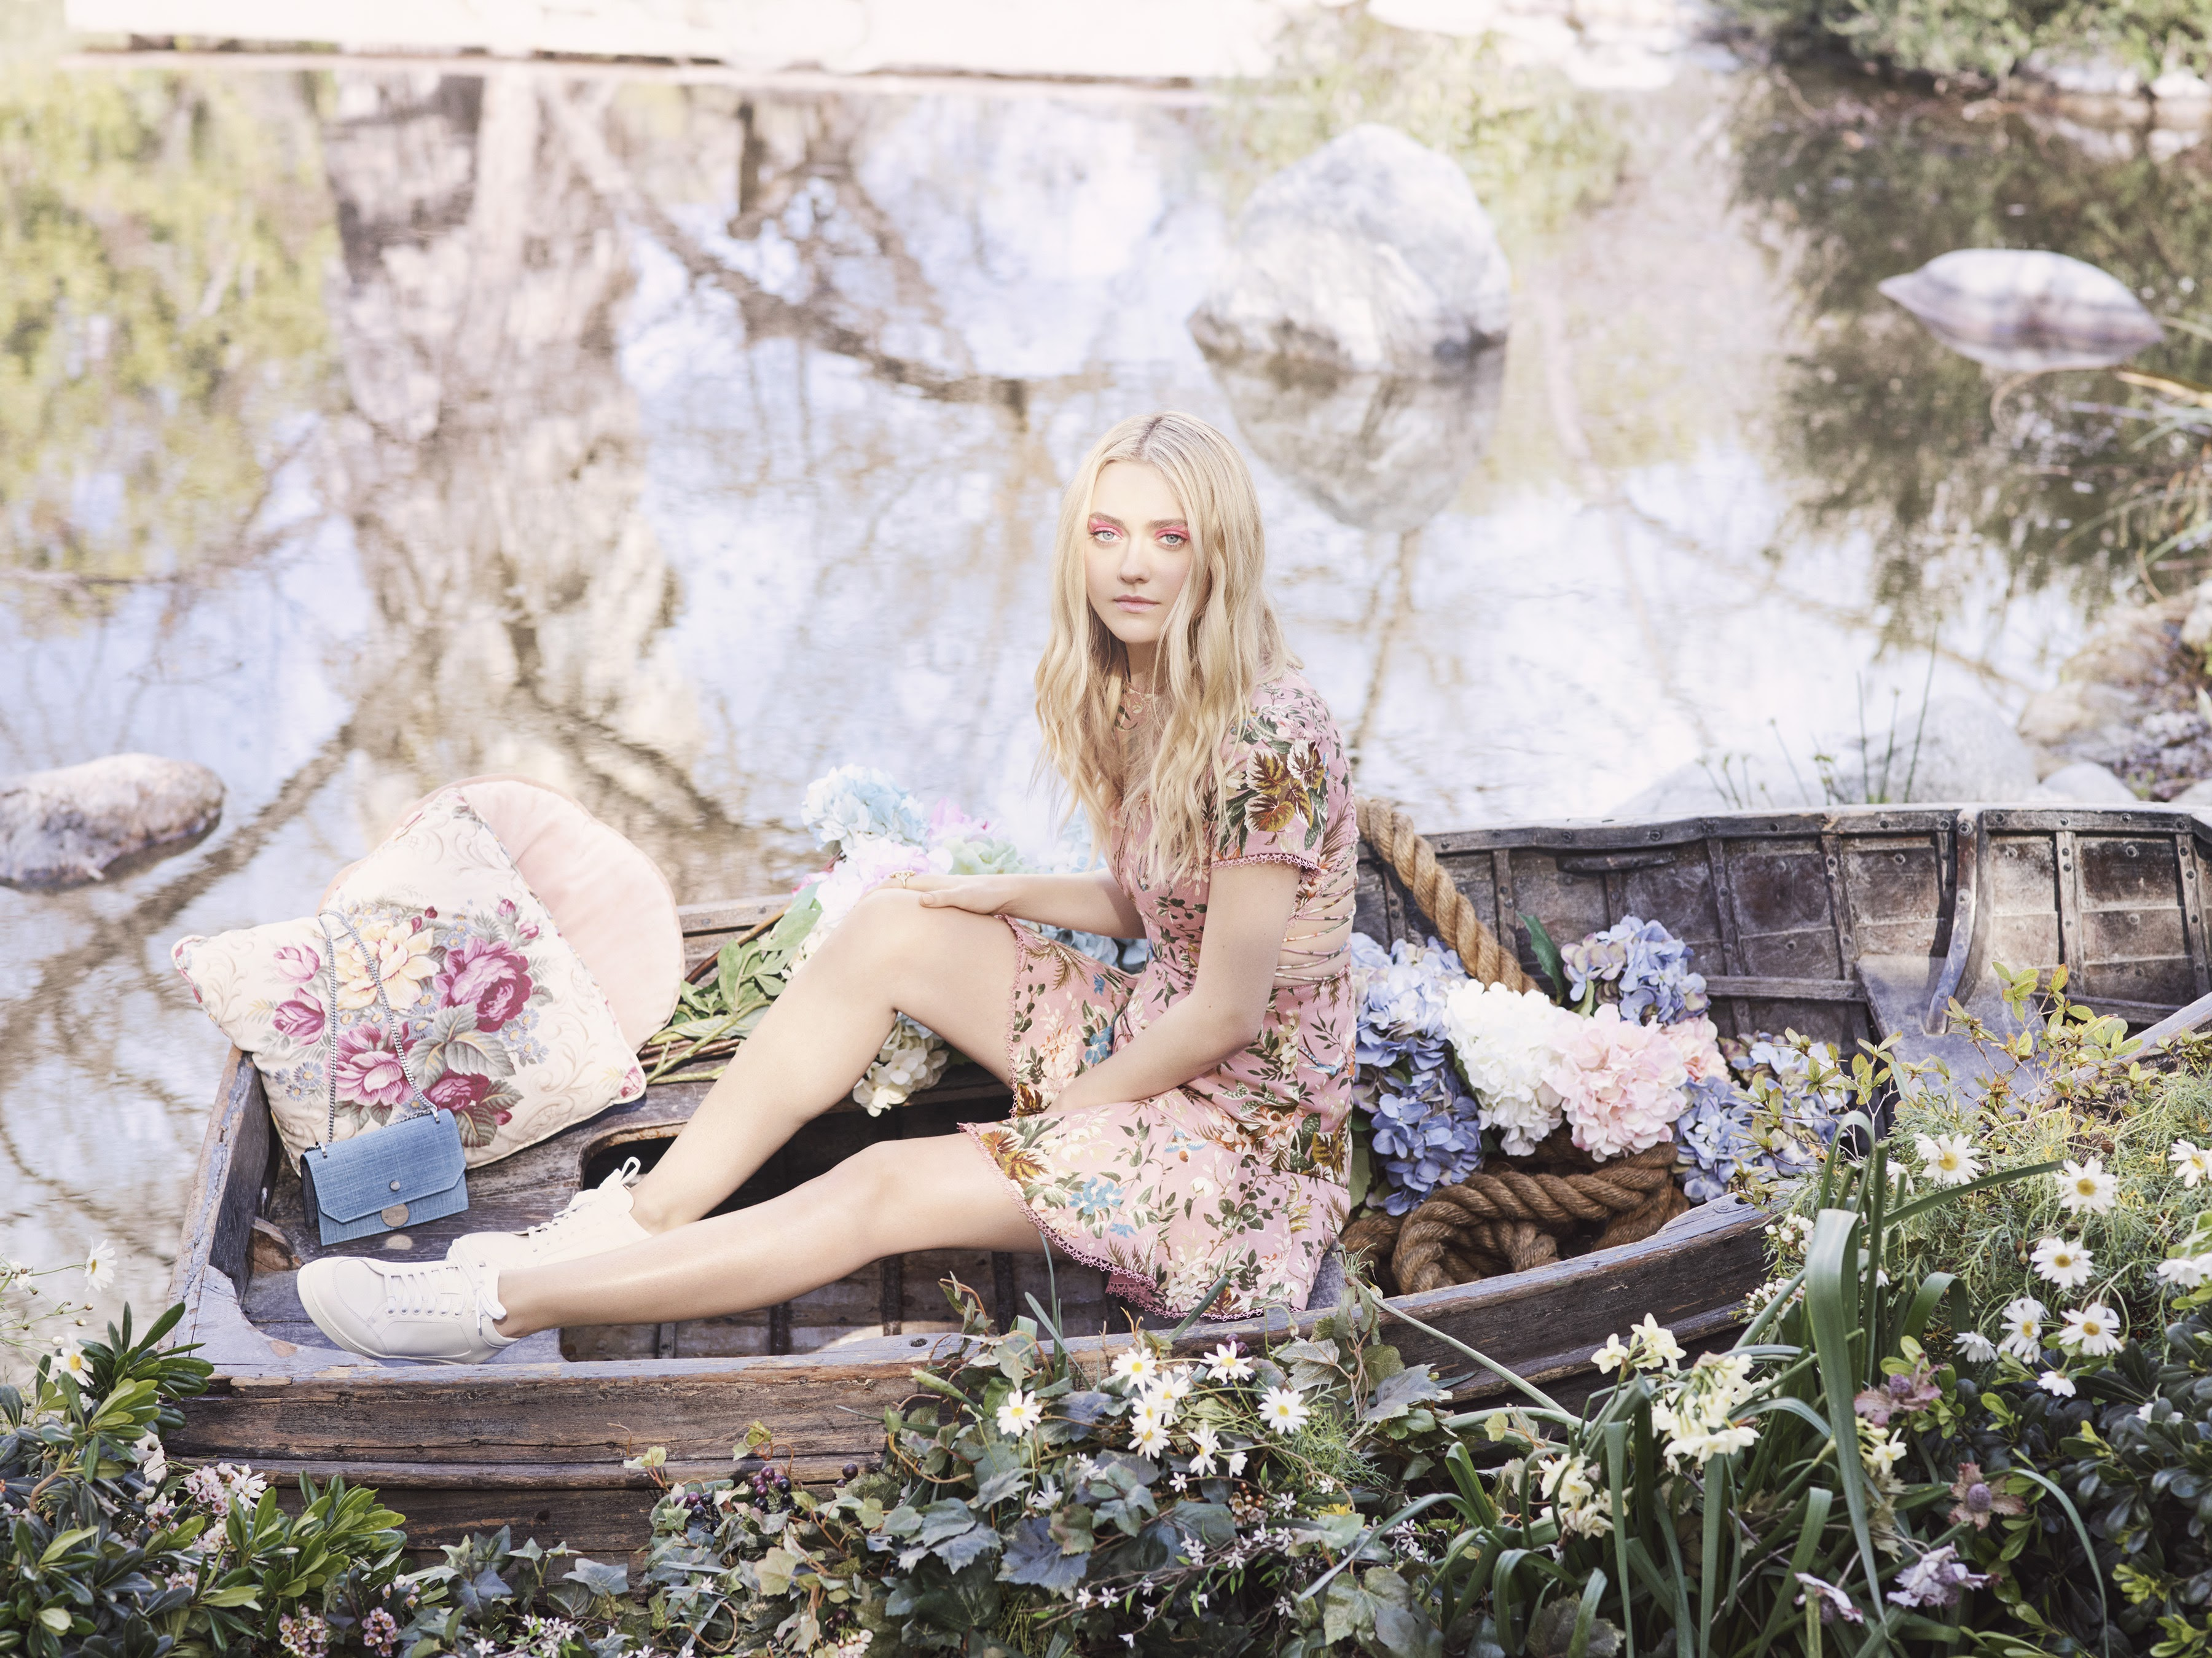 Dakota Fanning appeared in the new springs and summer campaign of Jimmy Choo